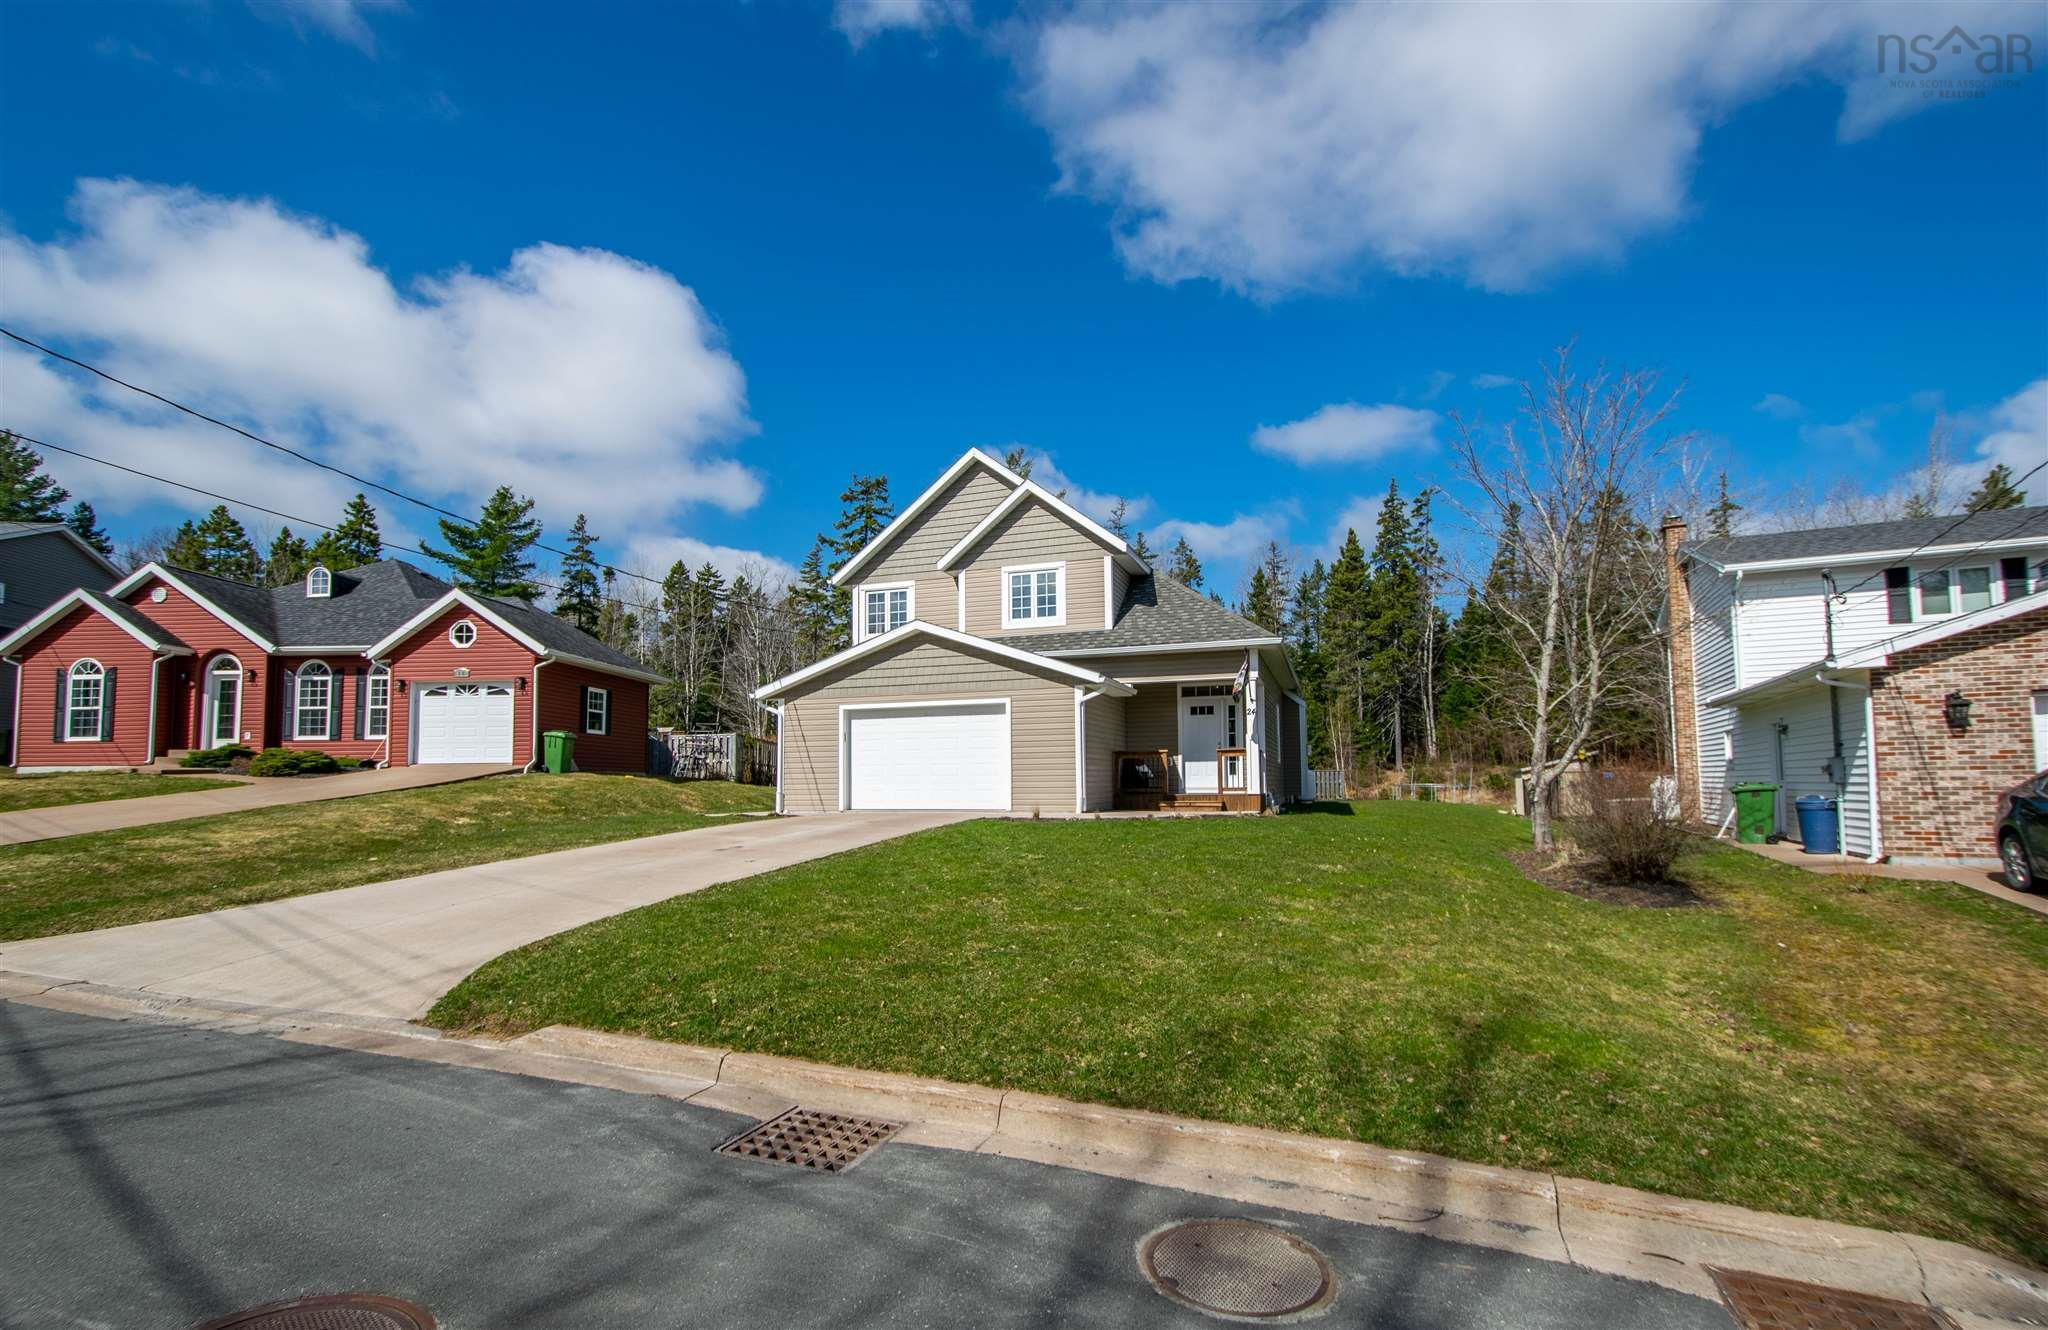 24 Pineview Crescent, Stellarton, NS B0K 1S0, 4 Bedrooms Bedrooms, ,4 BathroomsBathrooms,For Sale,24 Pineview Crescent,202109460